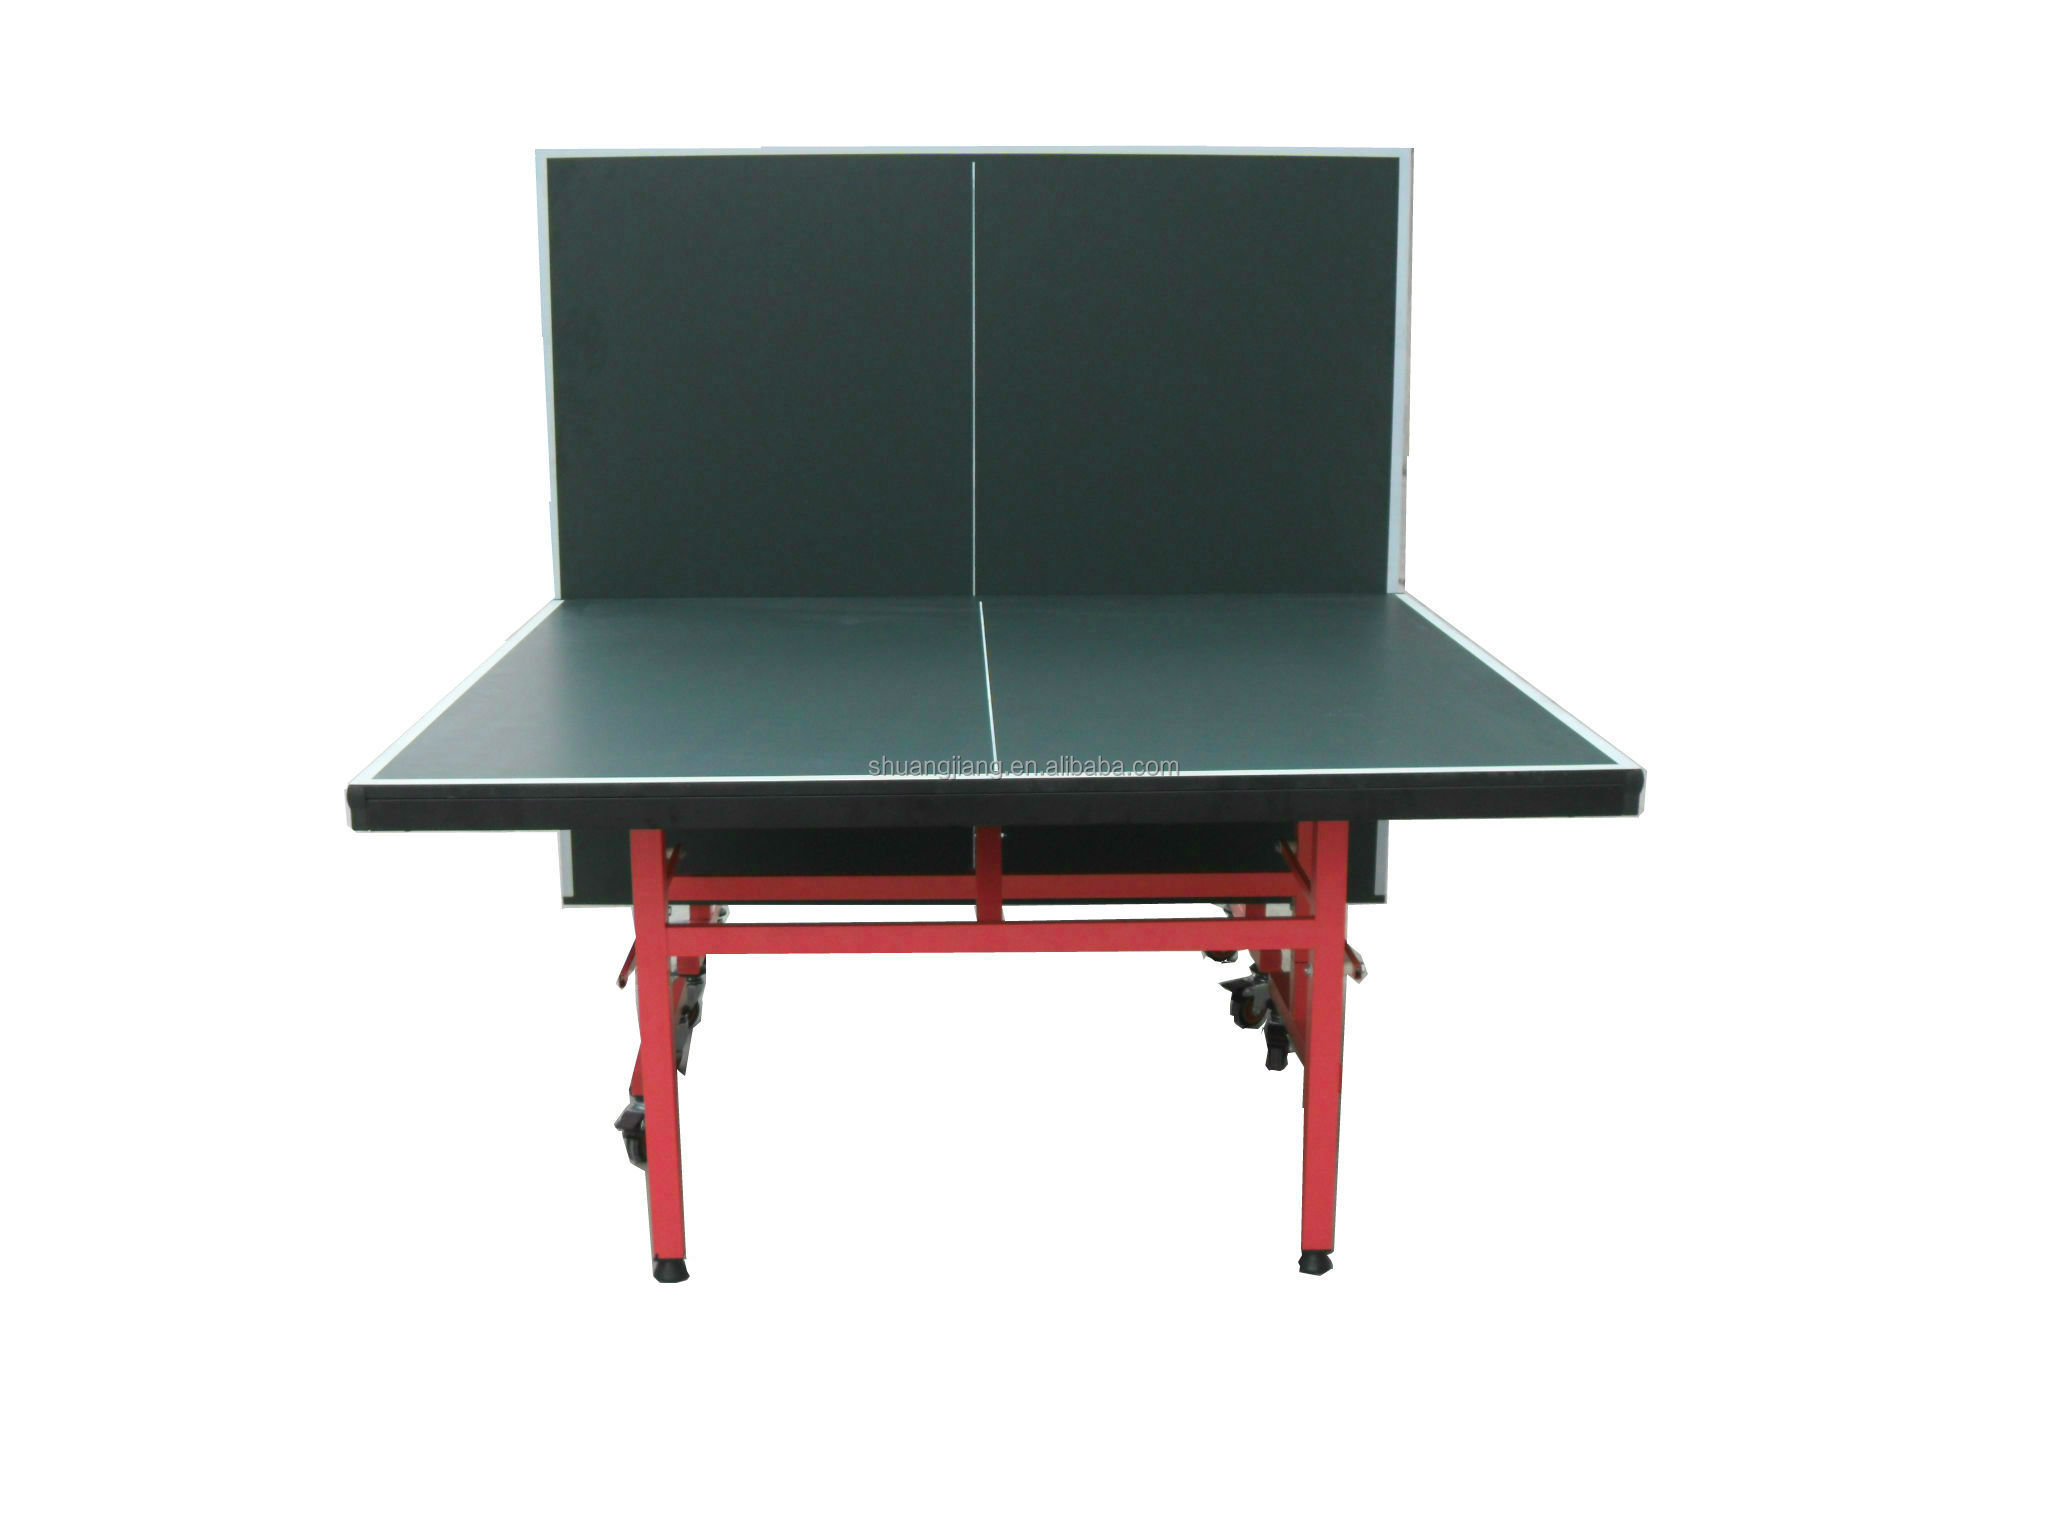 9ft table tennis table dimensions